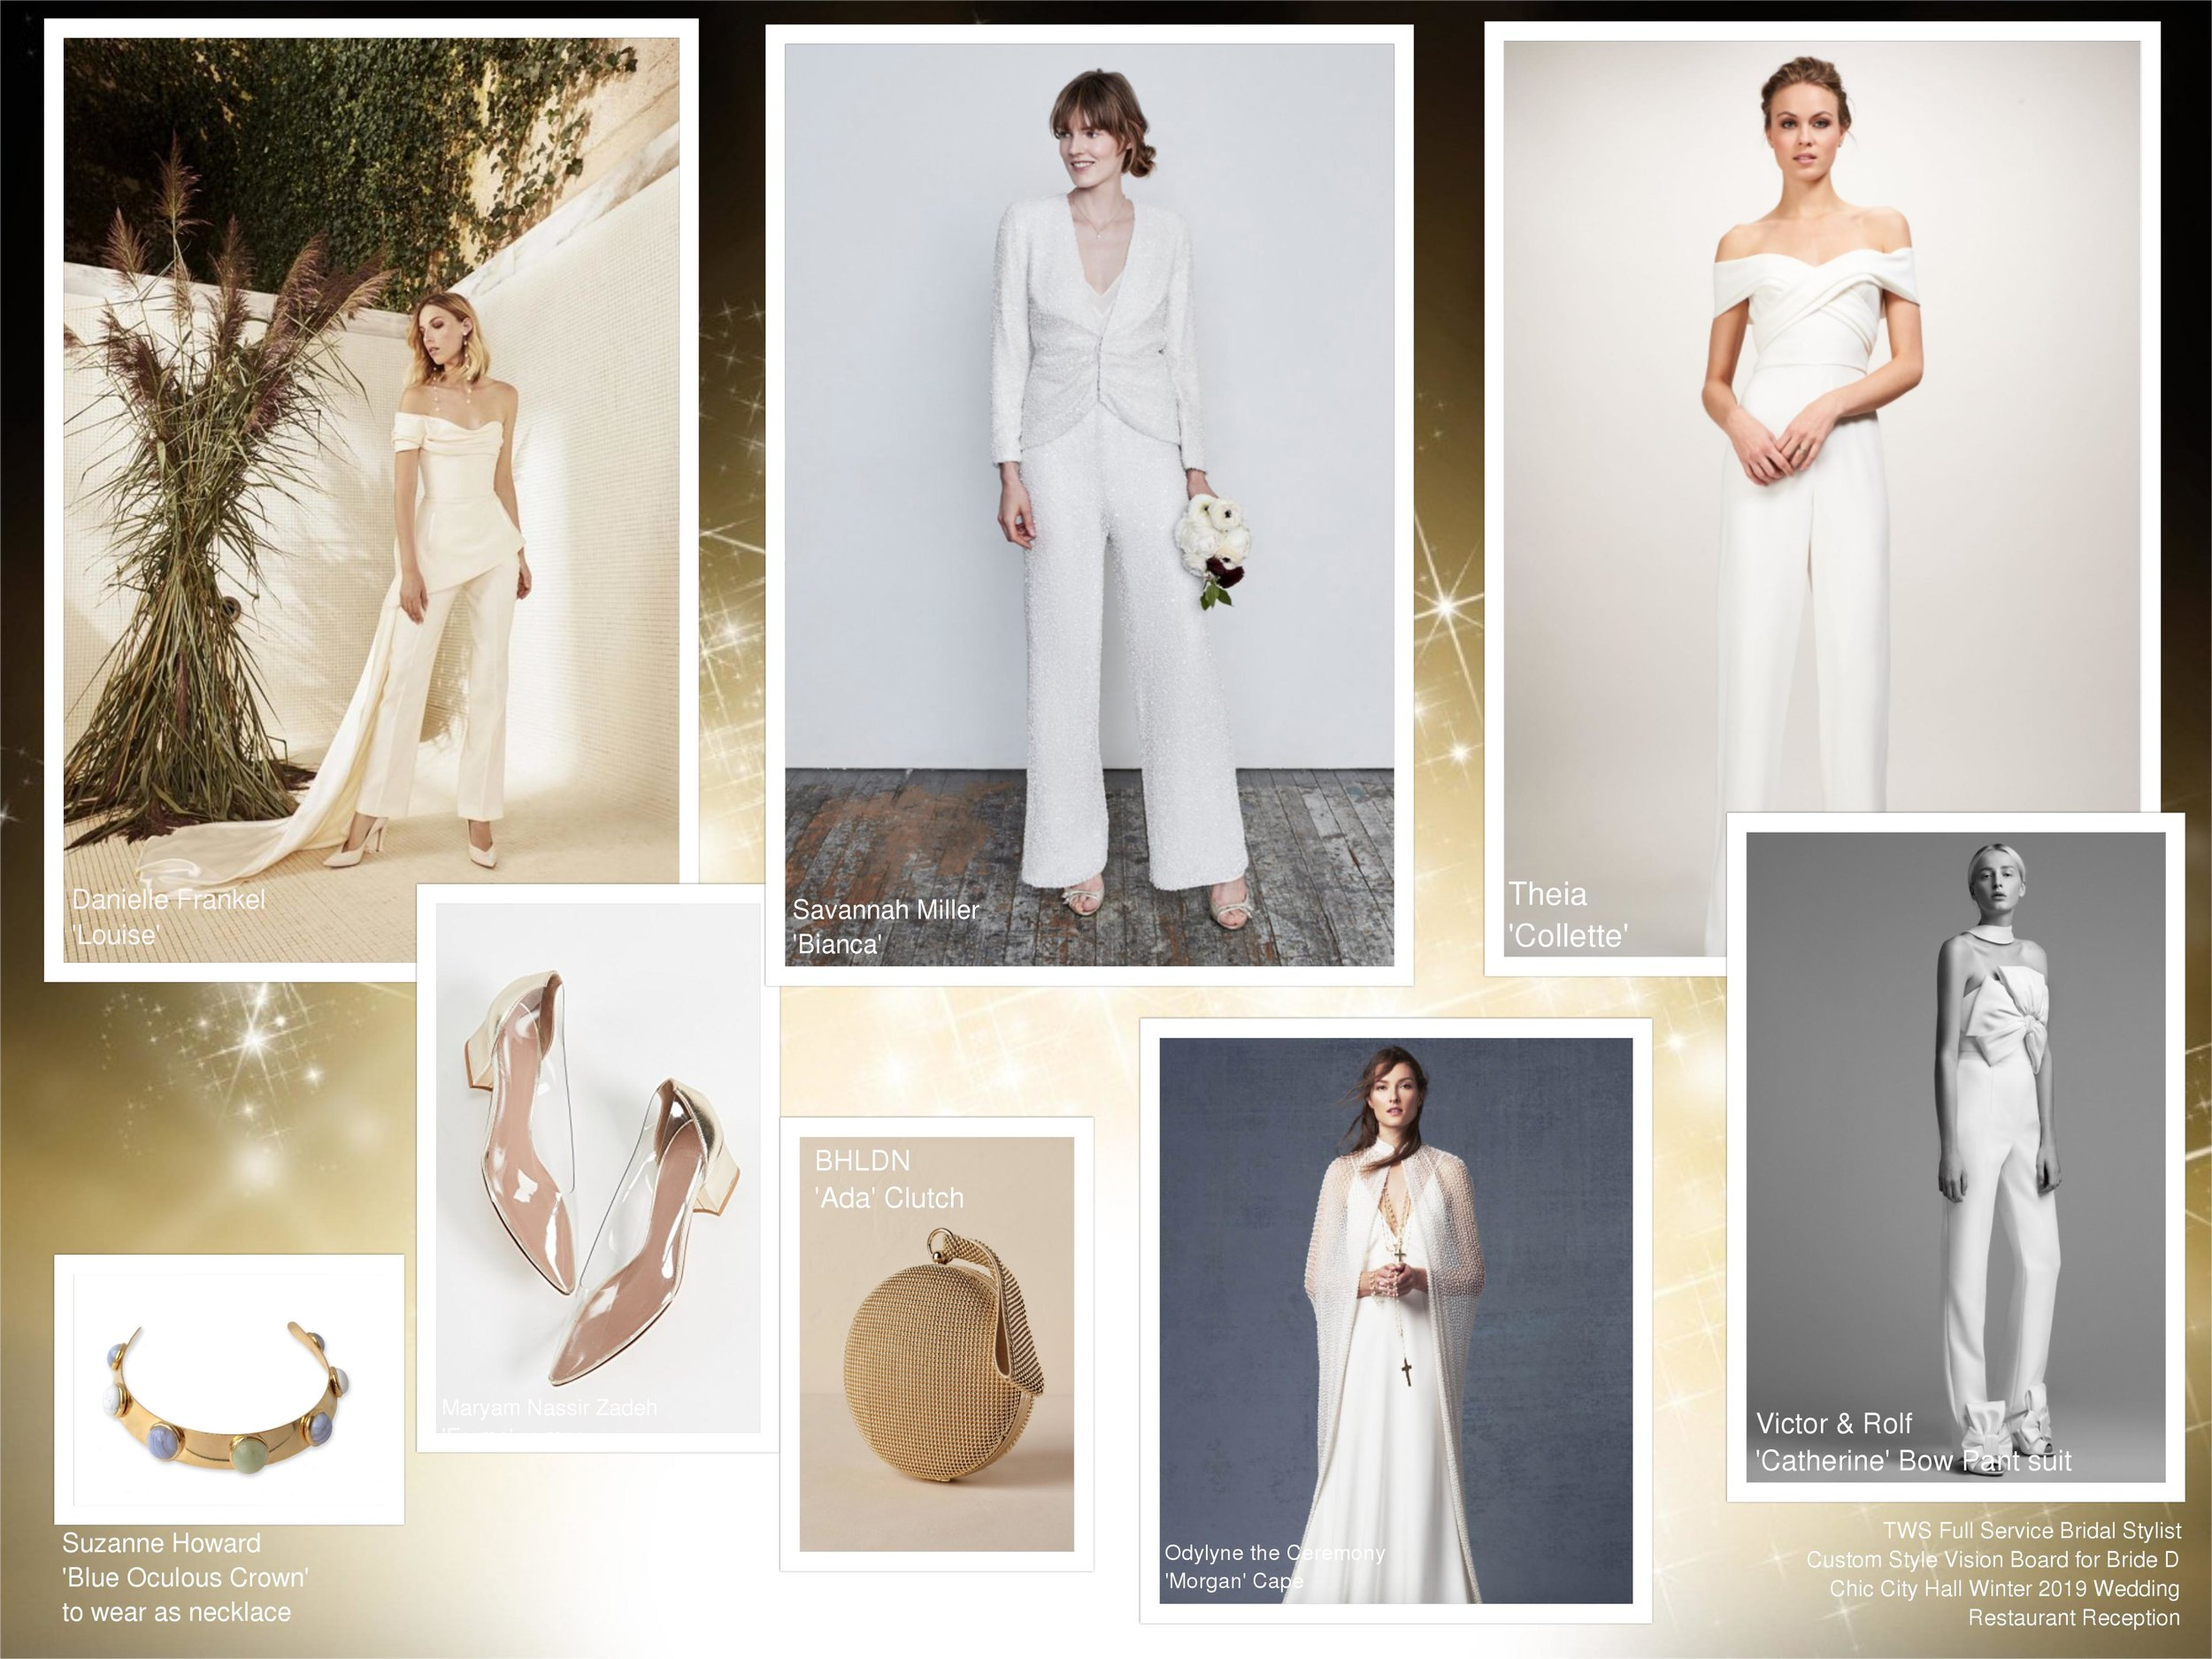 Sample Personal Bridal Style Vision Board